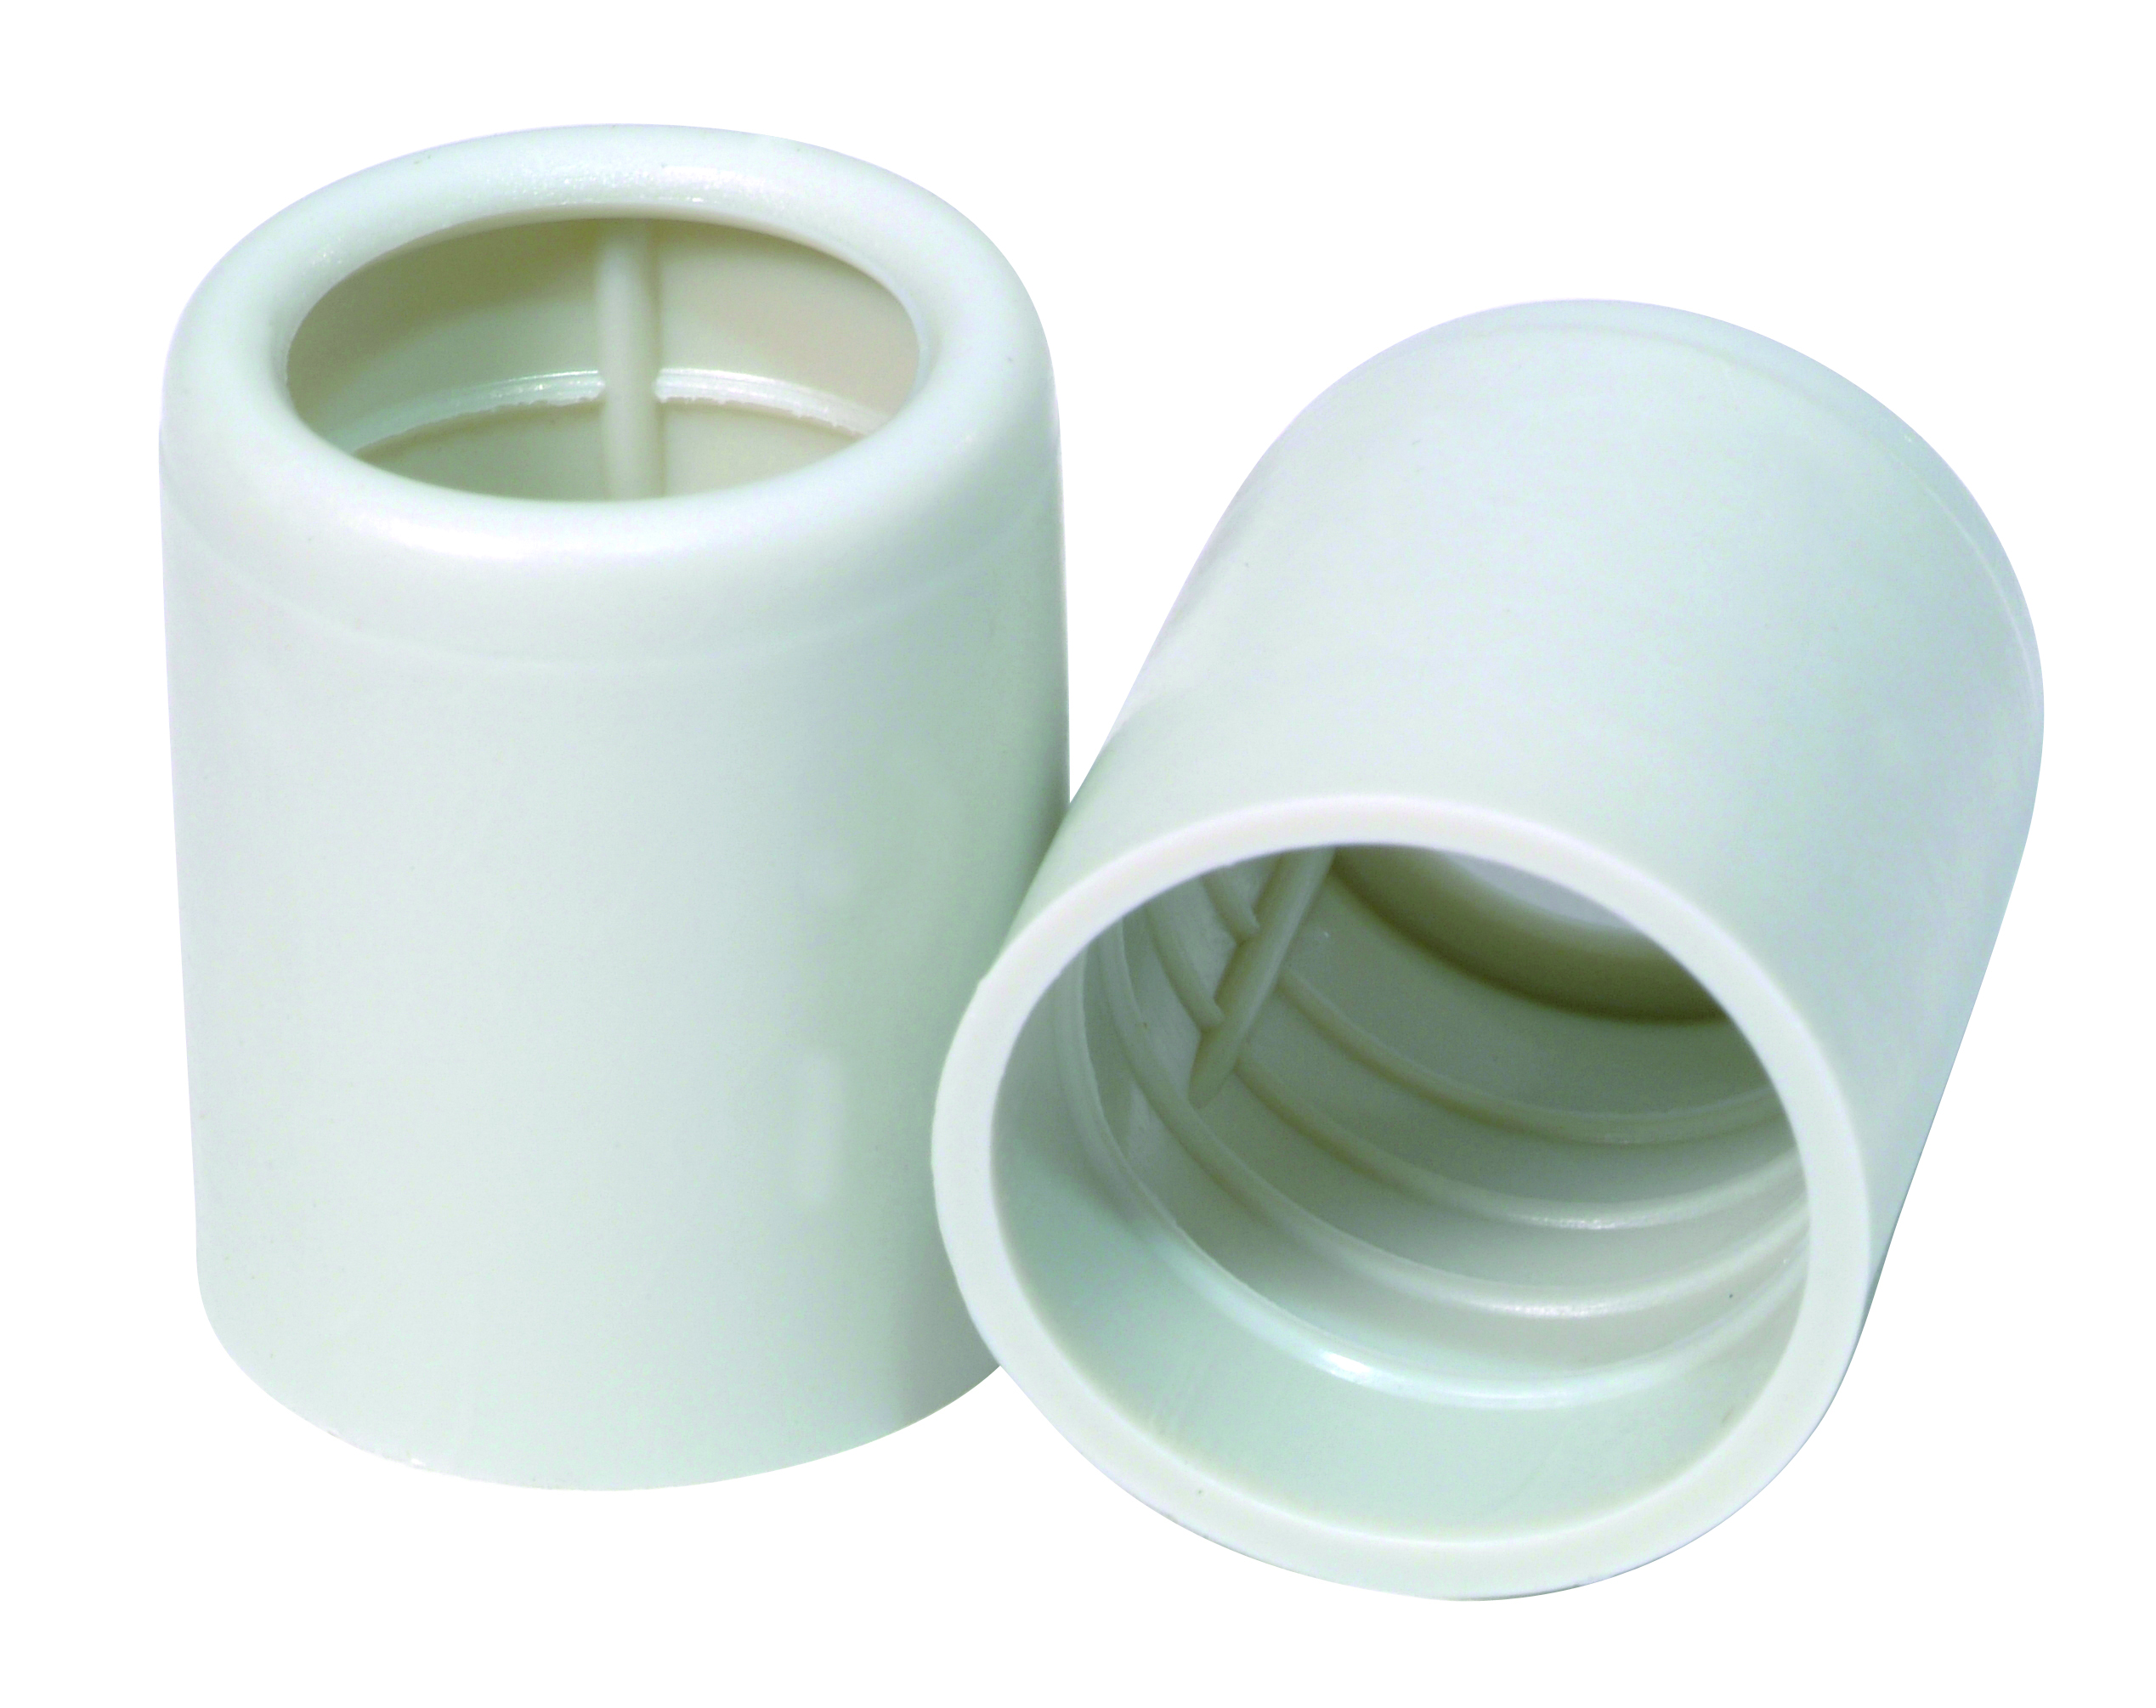 Entrance for PVC pipe 16mm 5 pieces